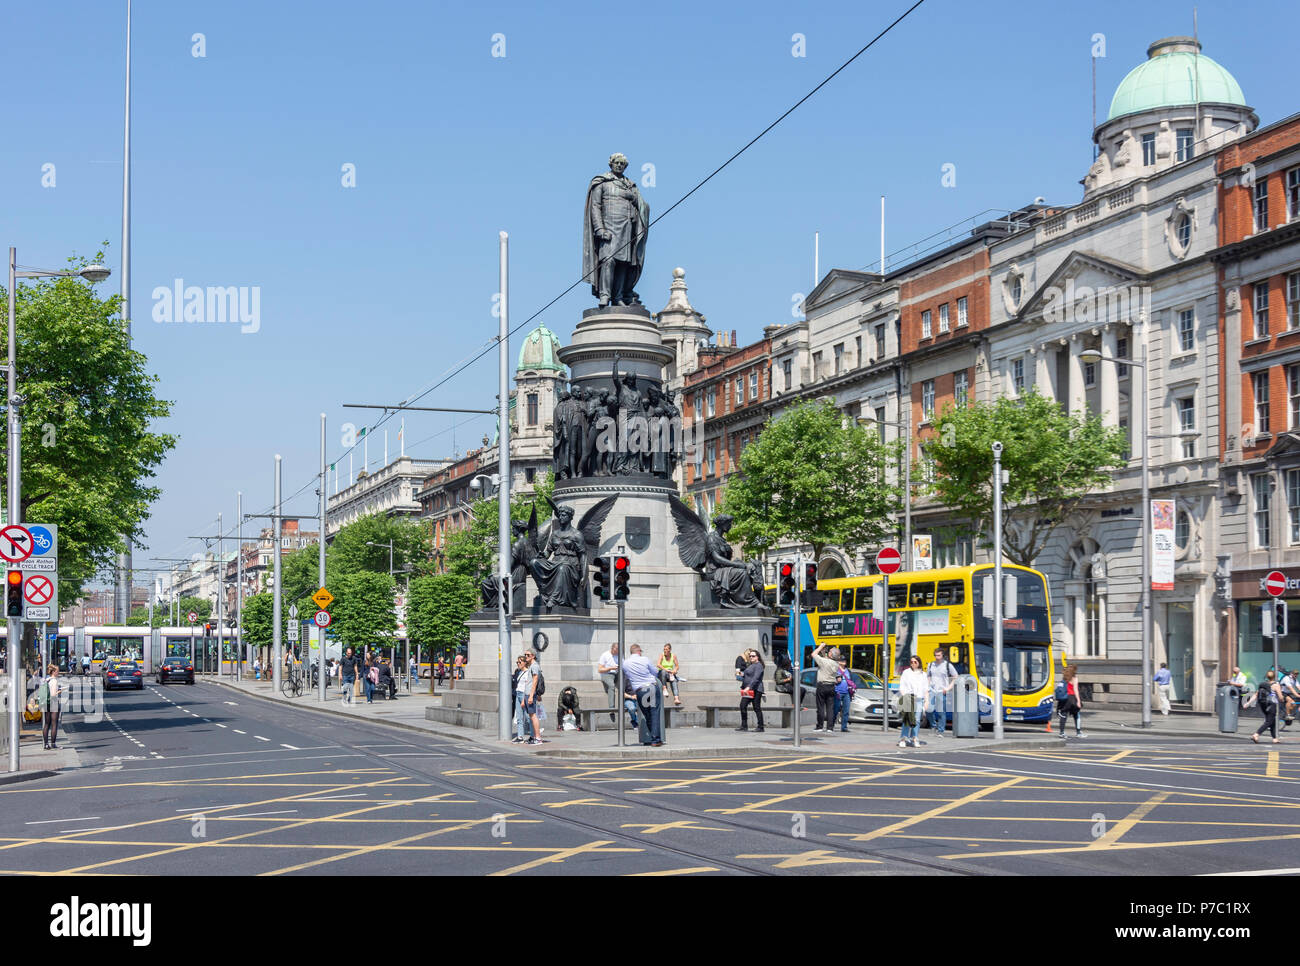 O'Connell Street Lower, Dublin, Leinster Province, Republic of Ireland - Stock Image